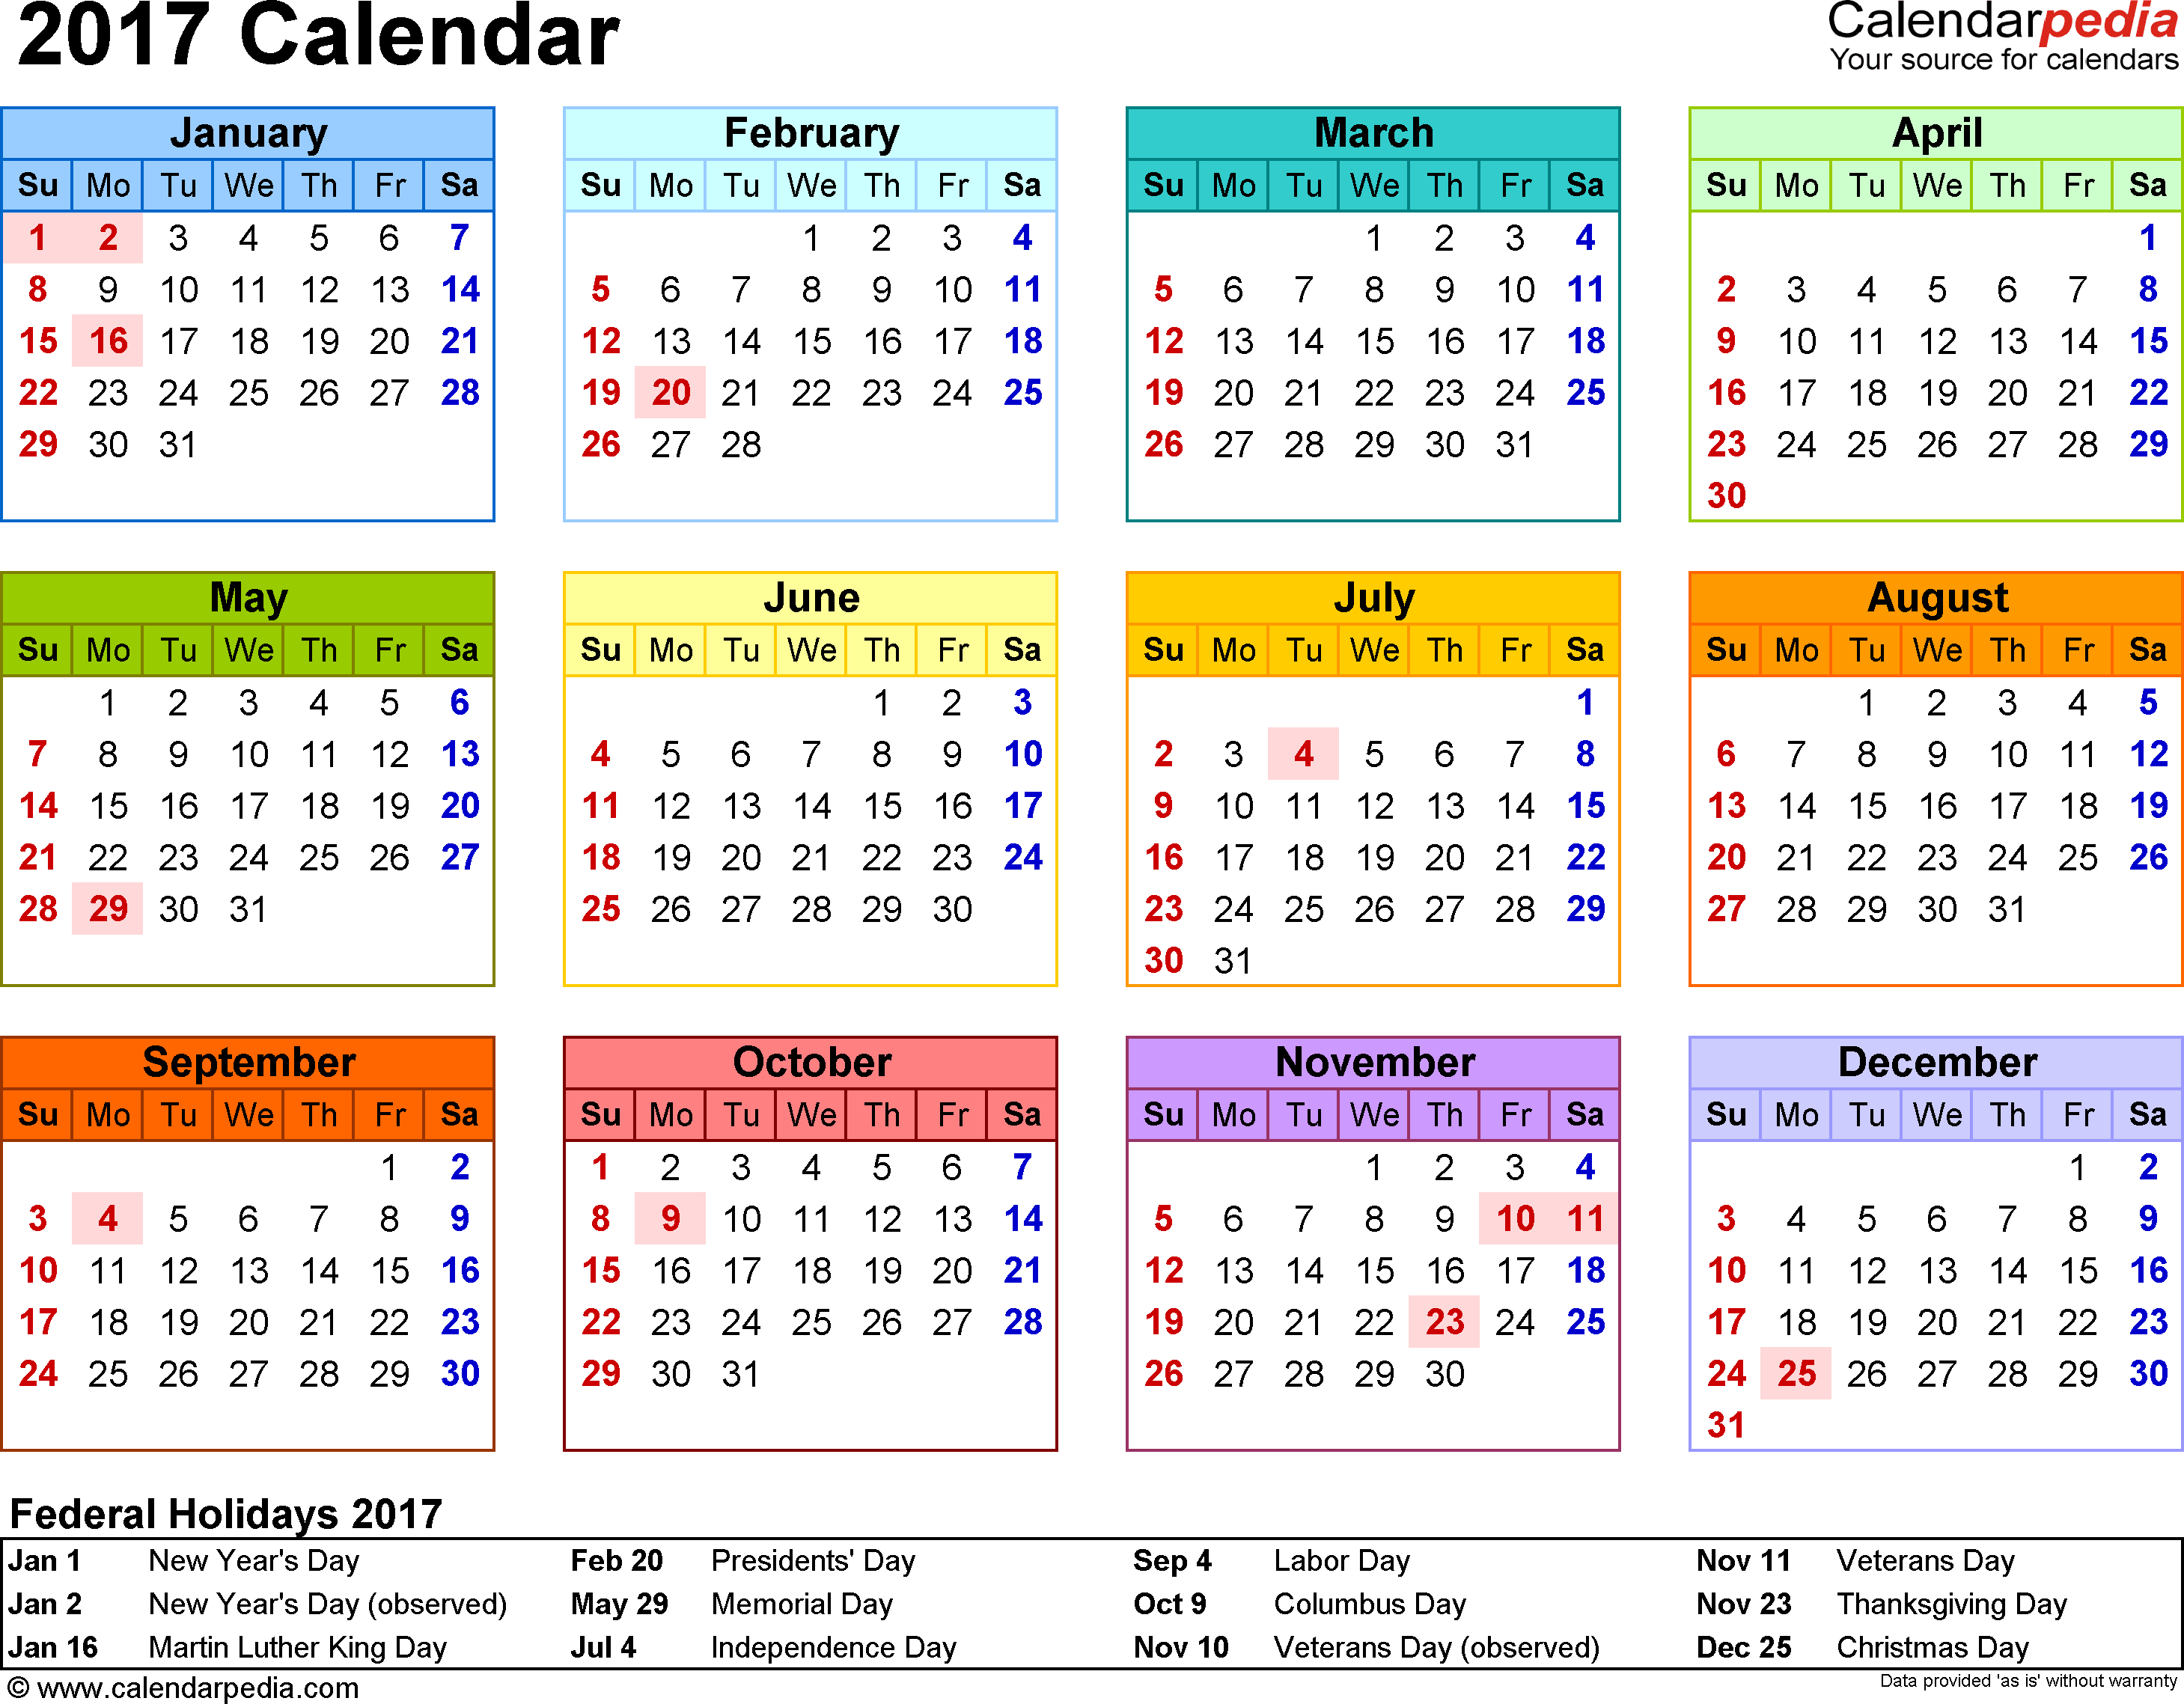 Template 8: 2017 Calendar For Word, Year At A Glance, 1 Page in National Day Calendar At A Glance